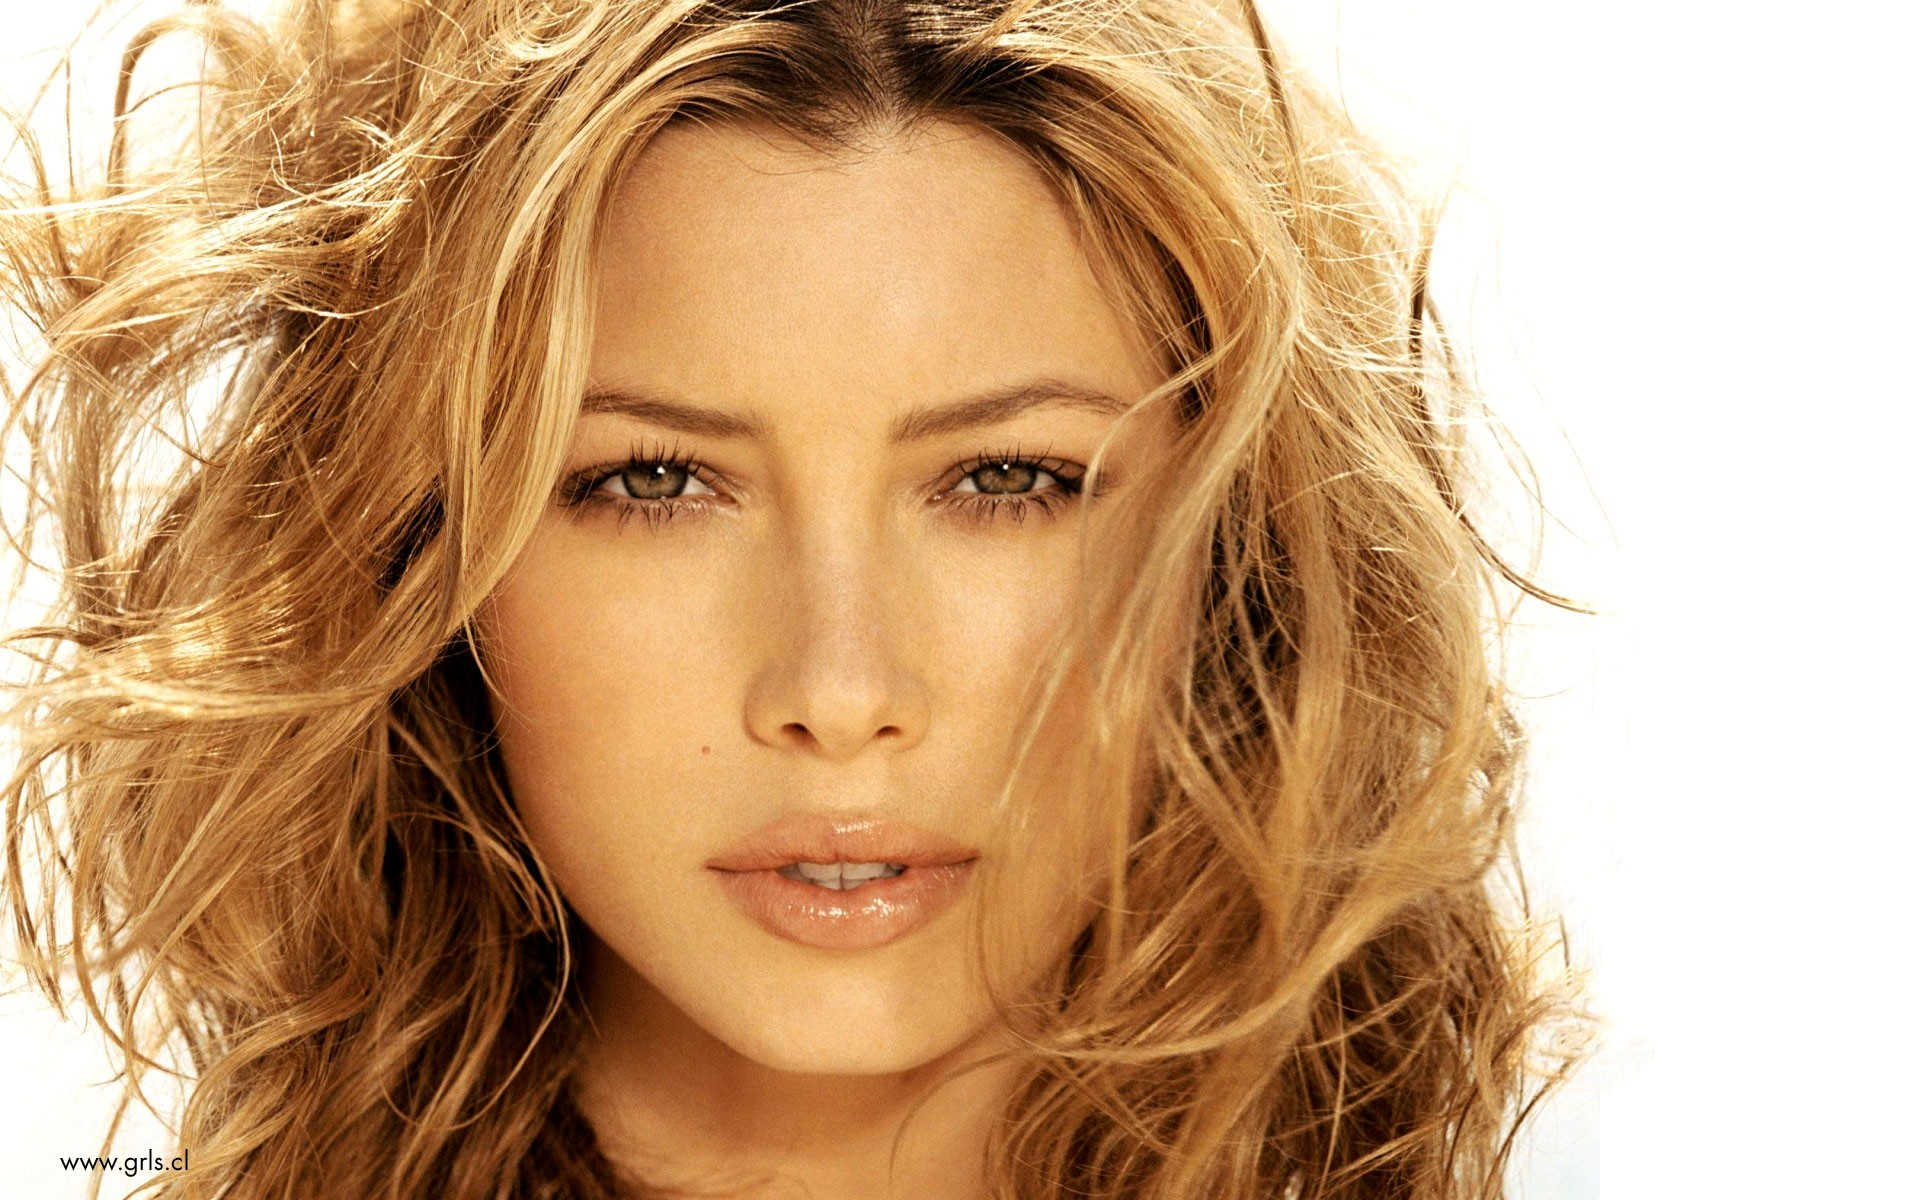 woman models Jessica Biel HD Wallpaper